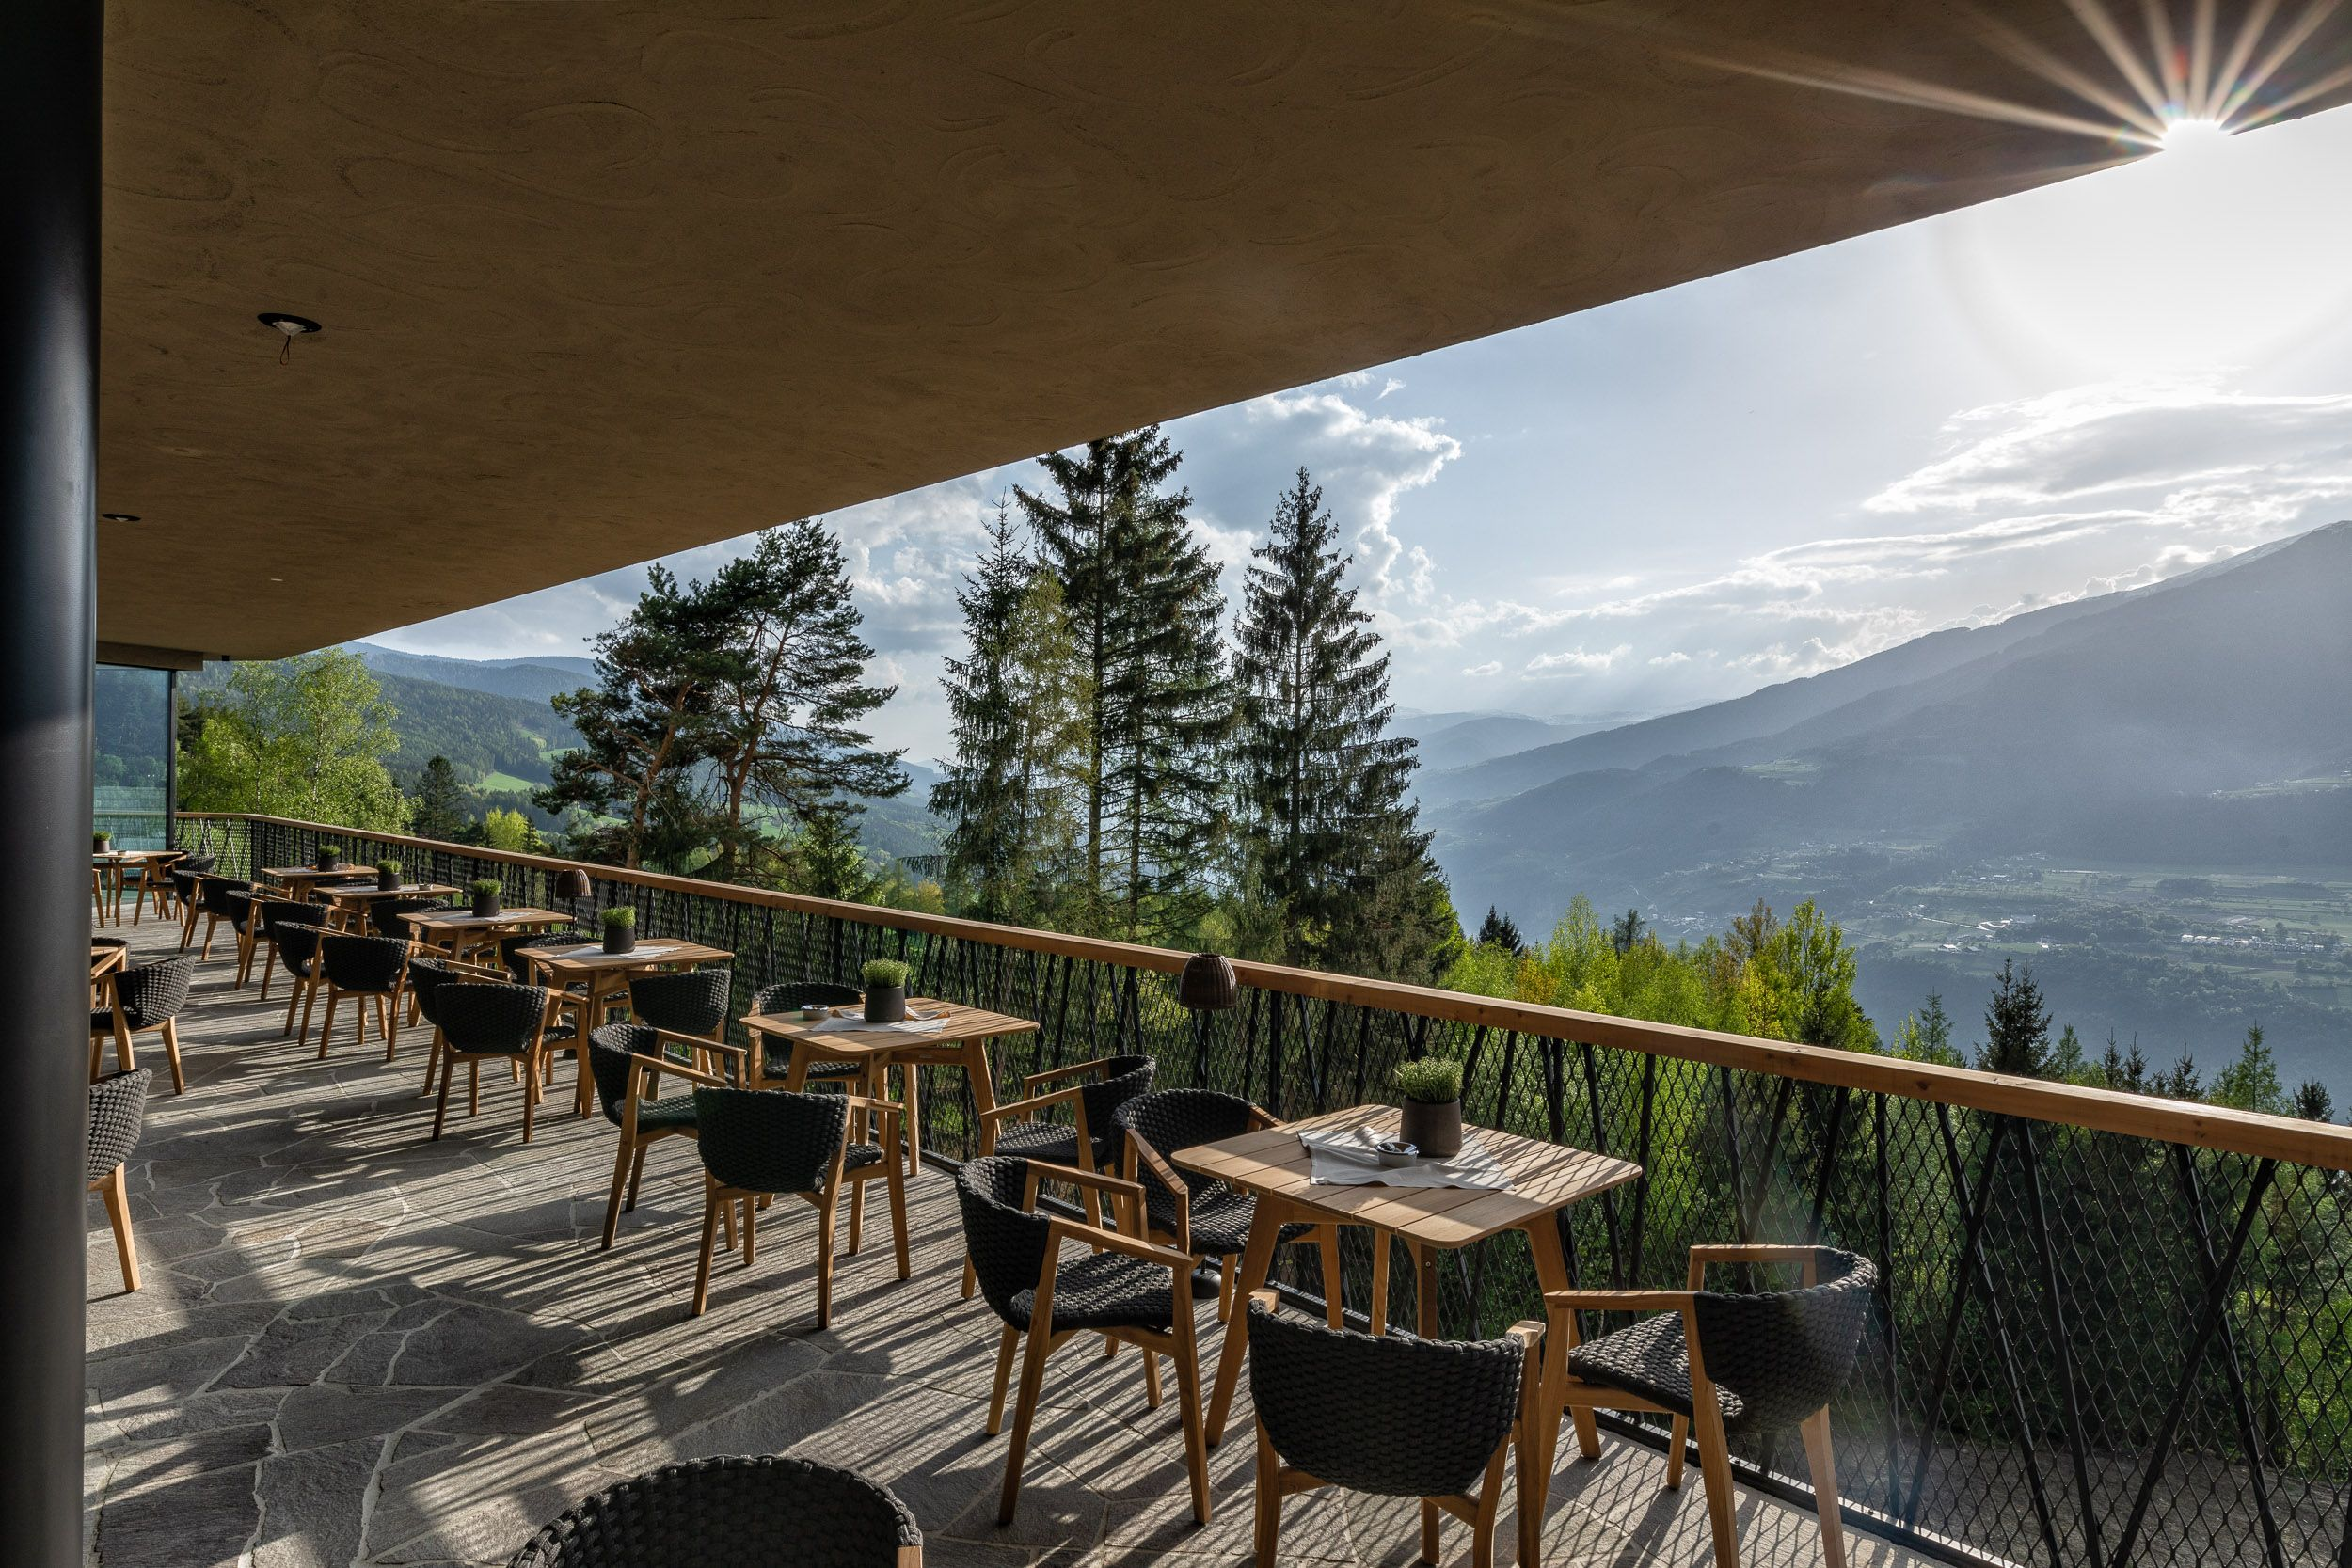 In South Tyrol, there is a magic place, a Hotel surrounded